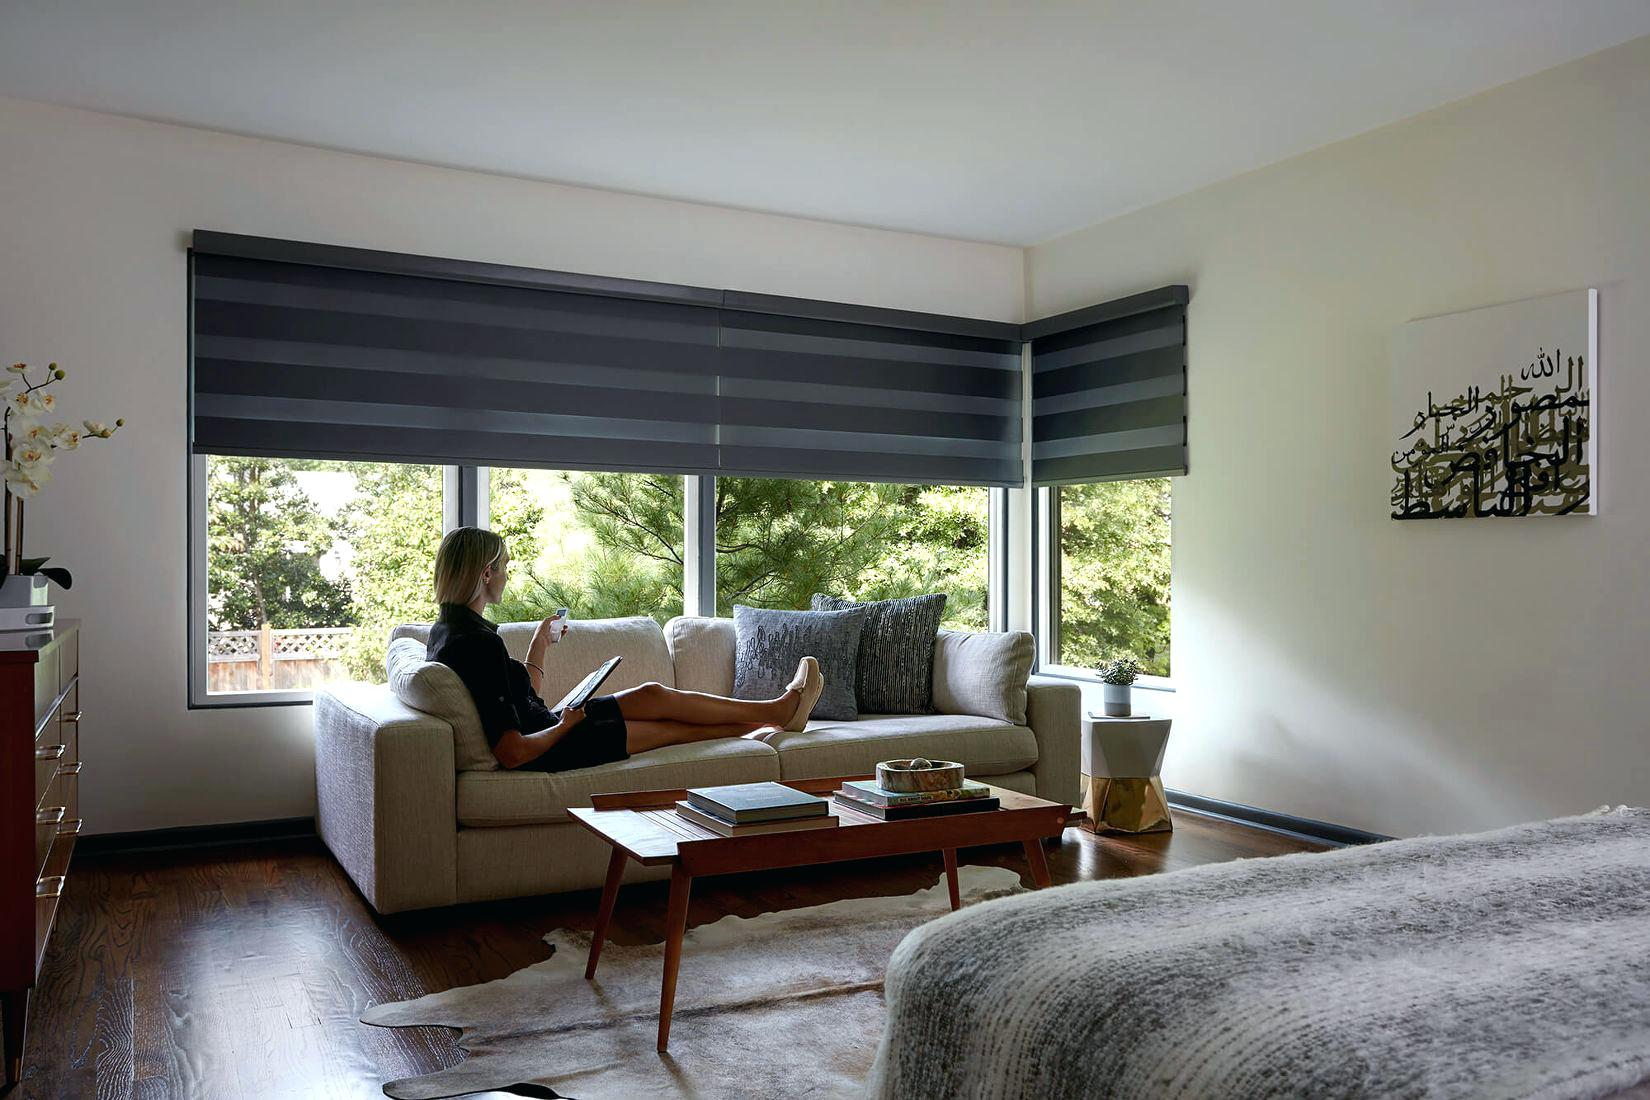 Remote control window coverings smart home automation for Motorized windows for the home